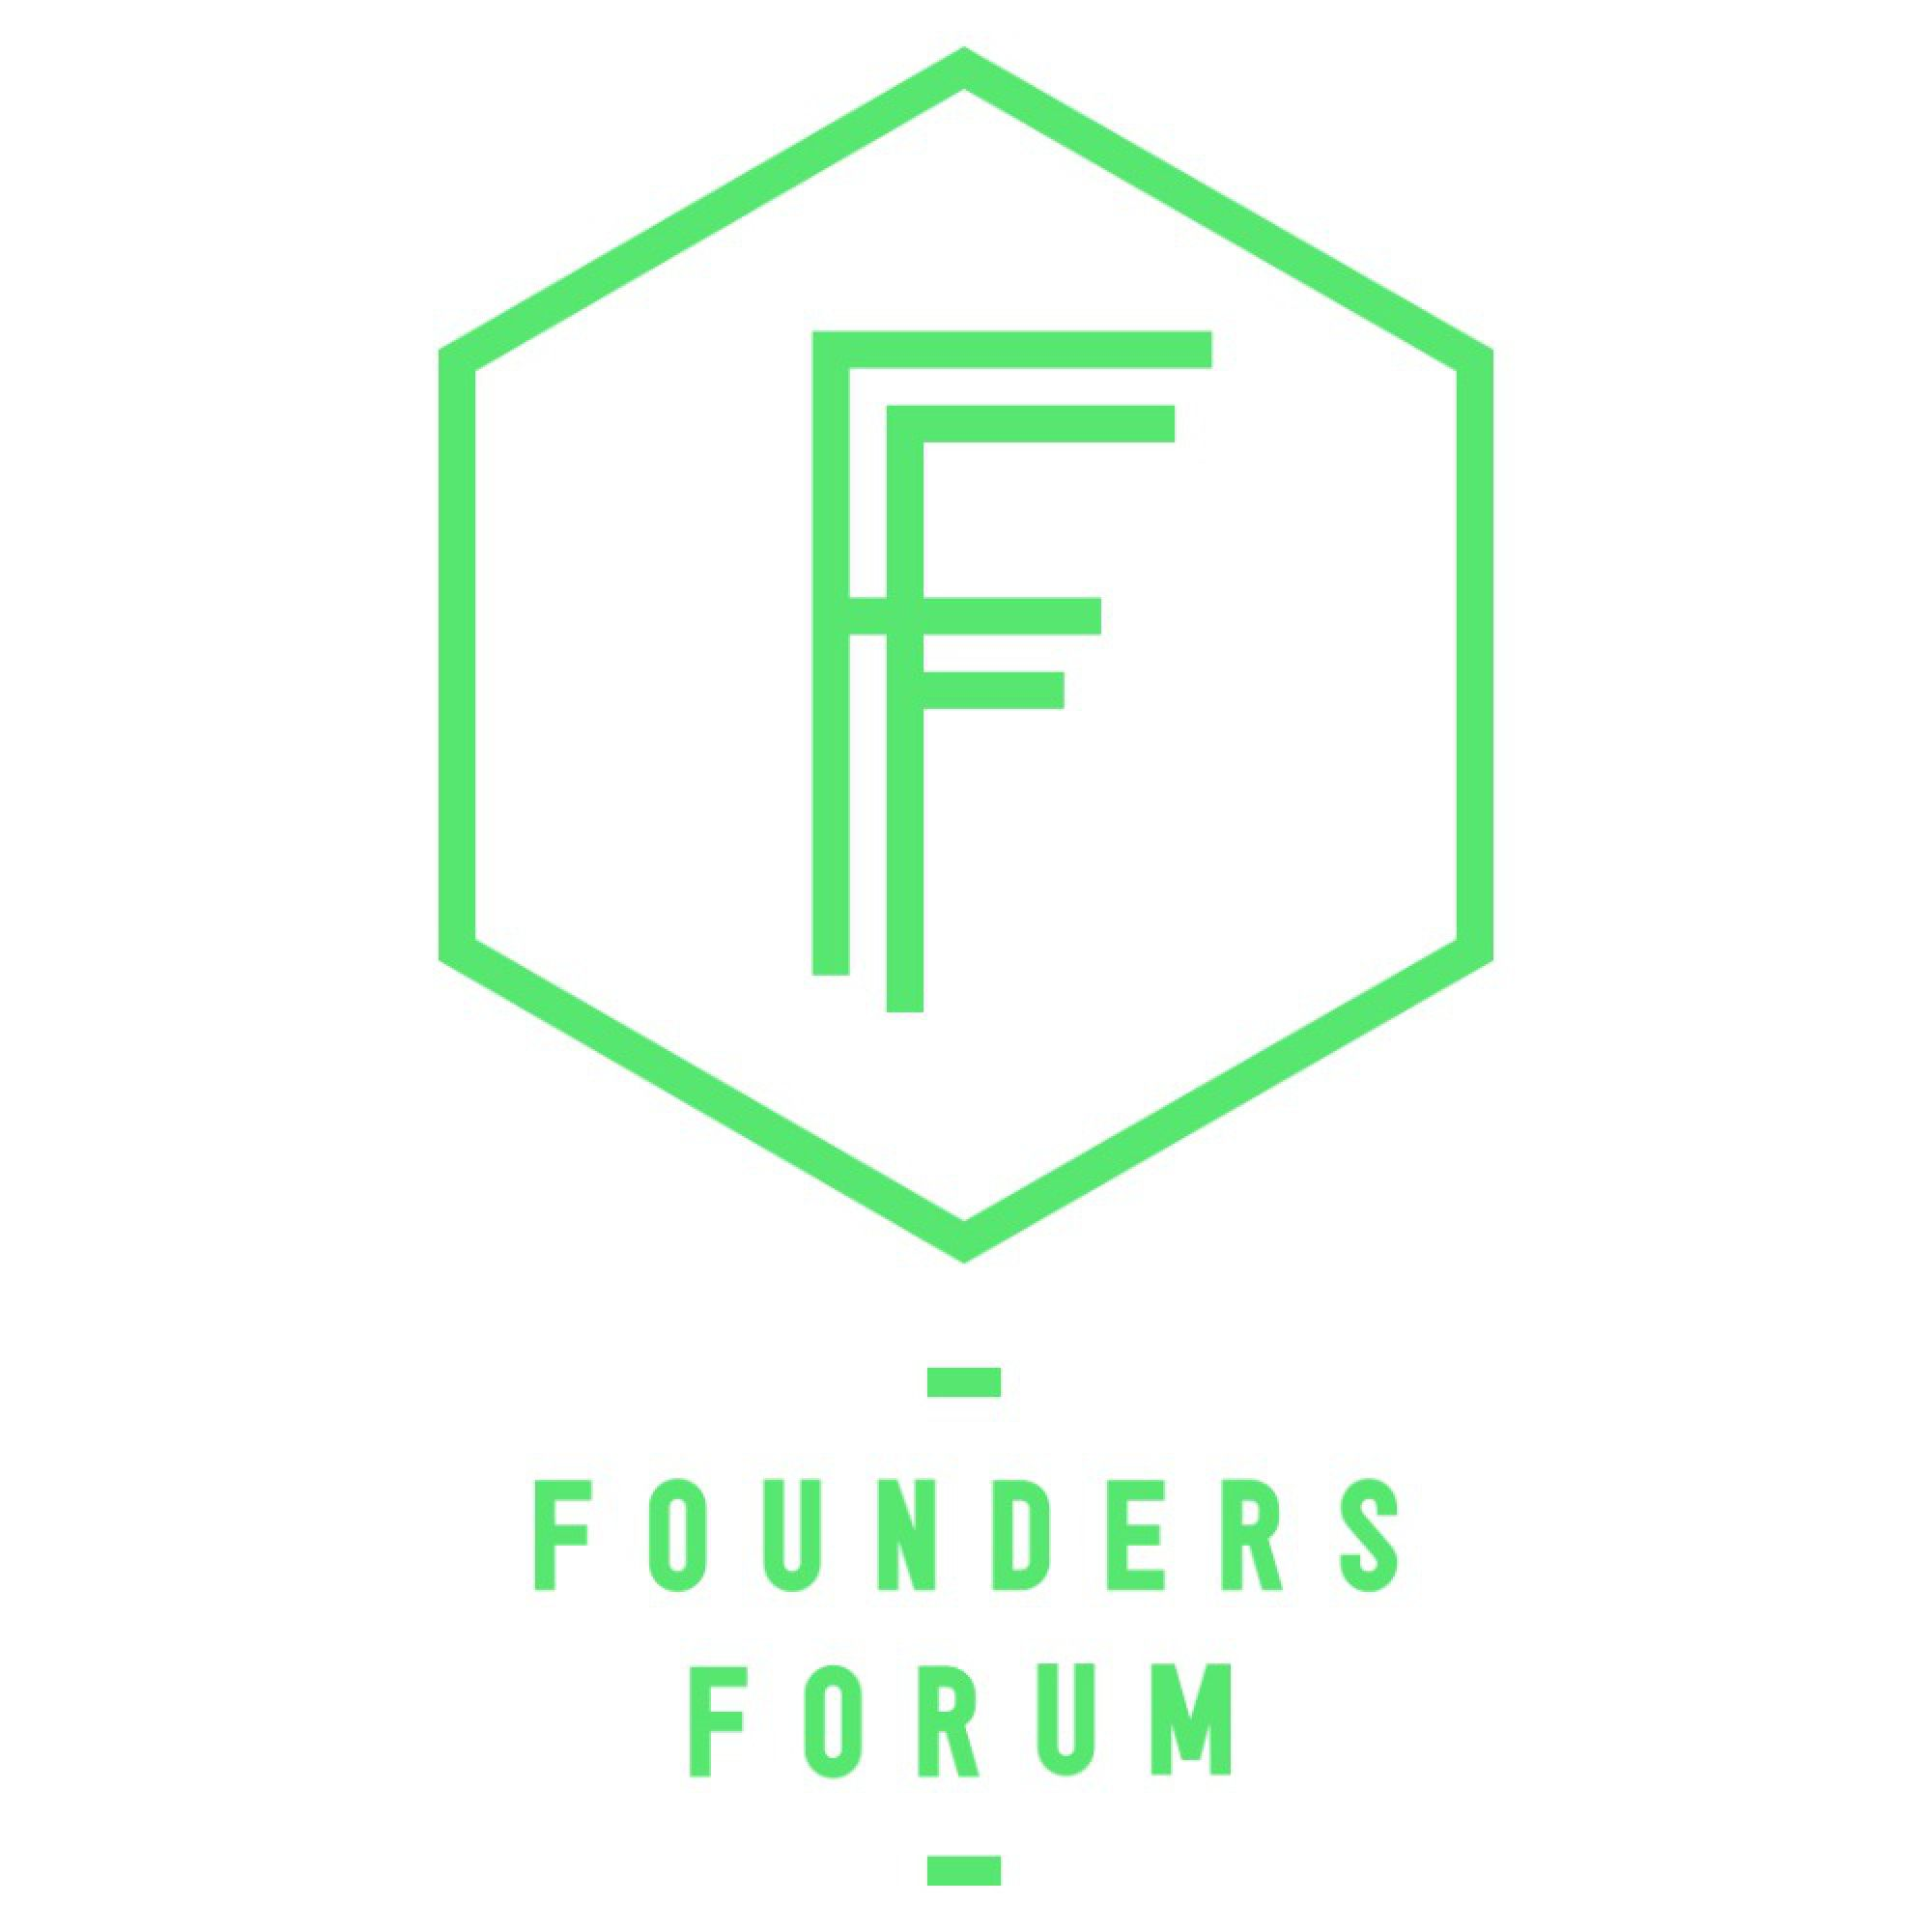 Nanoport Technology Sponsors Founders Forum